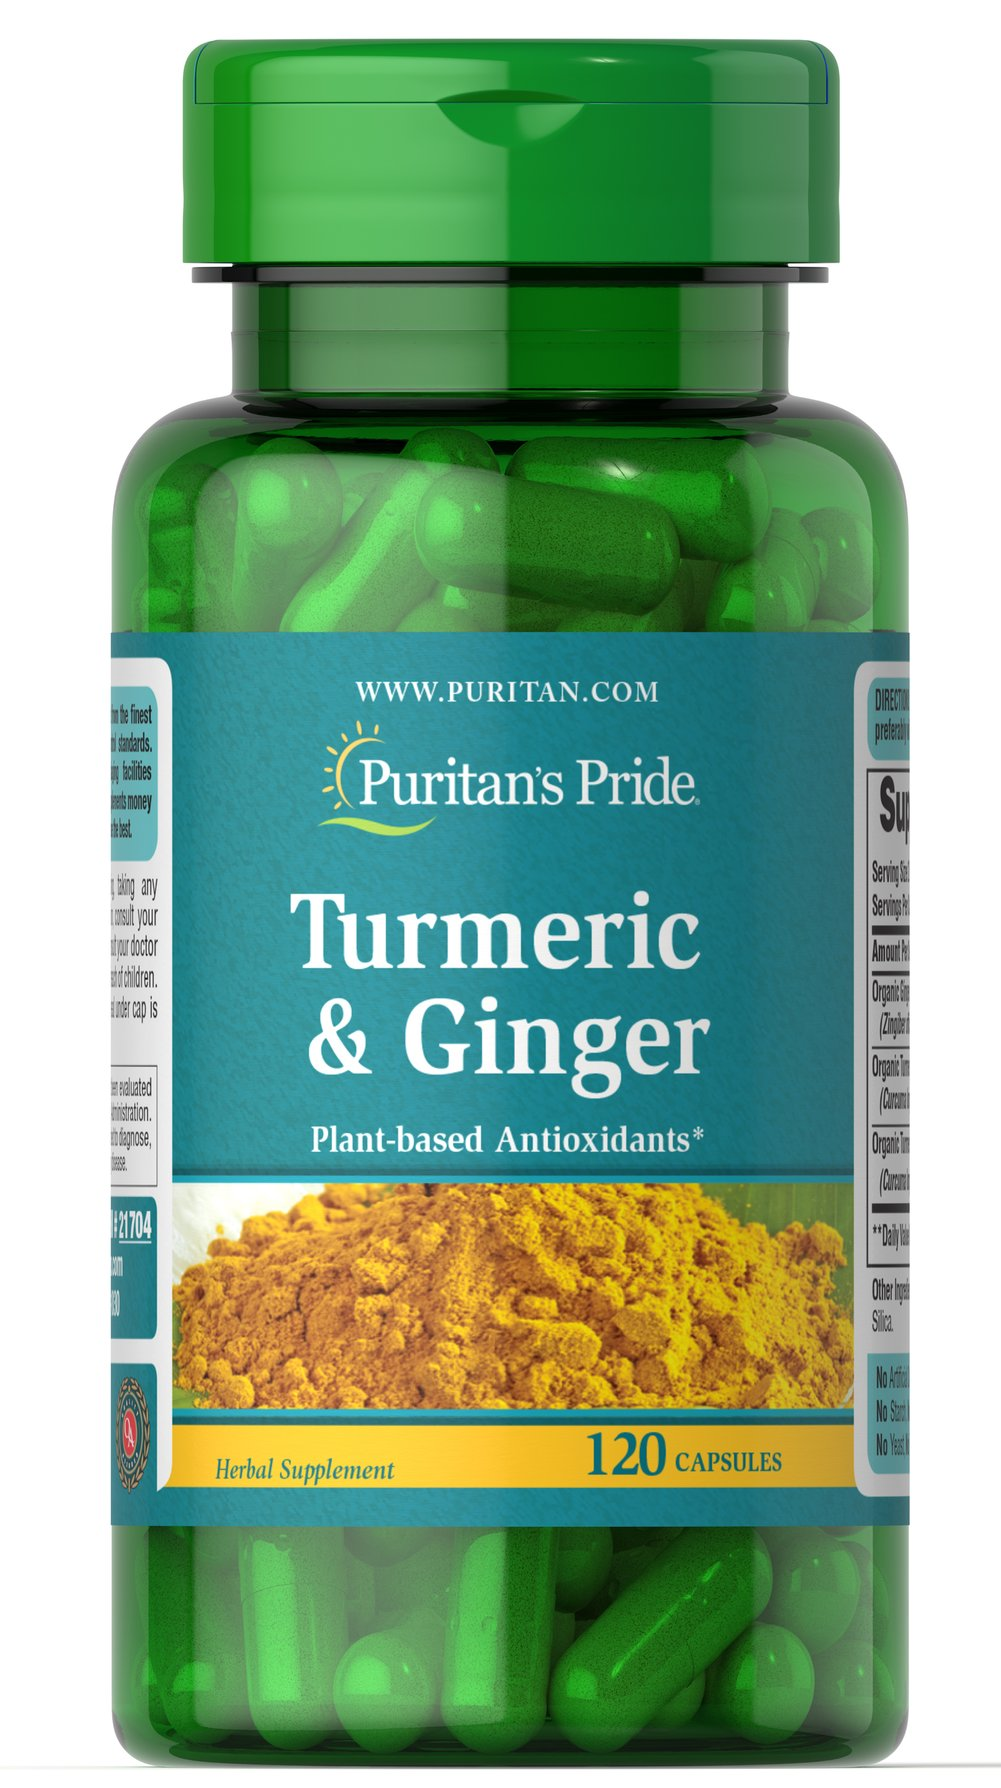 Turmeric & Ginger Thumbnail Alternate Bottle View